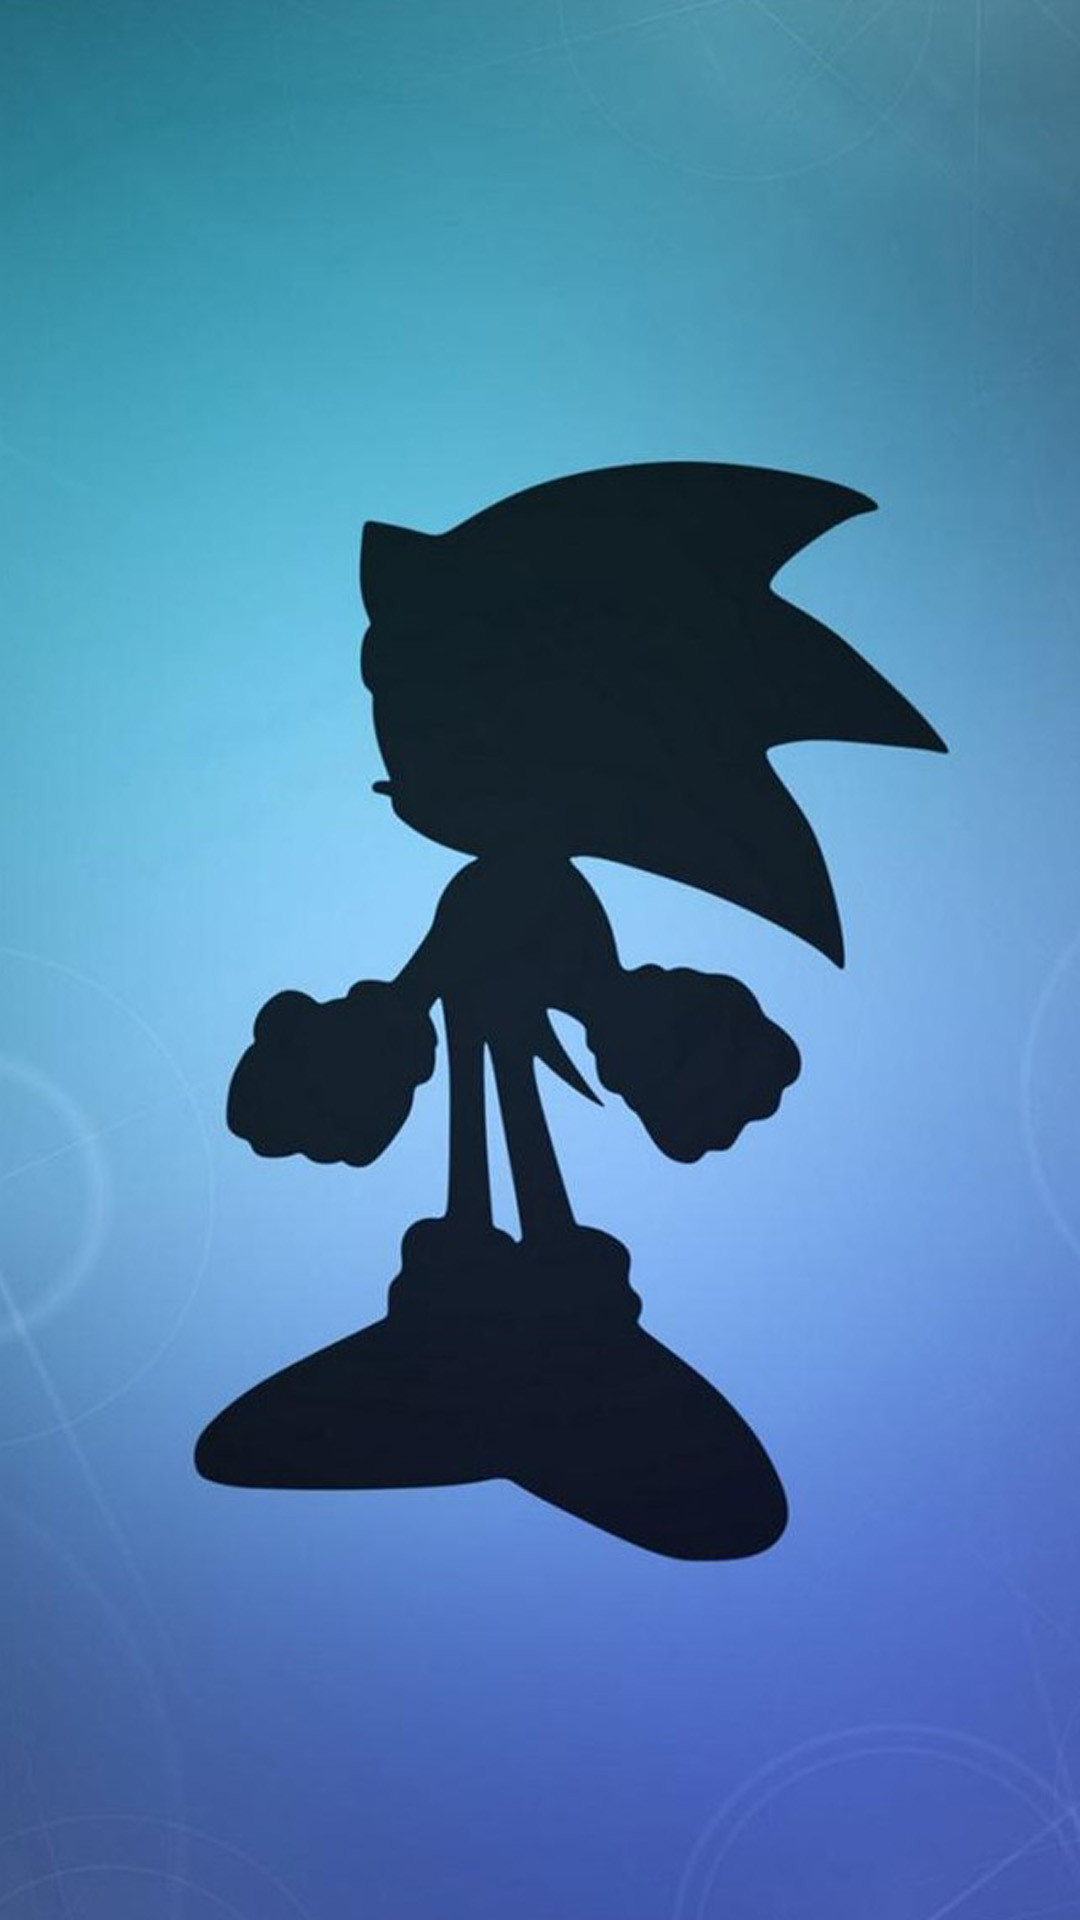 1080x1920 ... sonic iphone wallpaper; wallpaper weekends sonic vs mario who ya got  mactrast ...